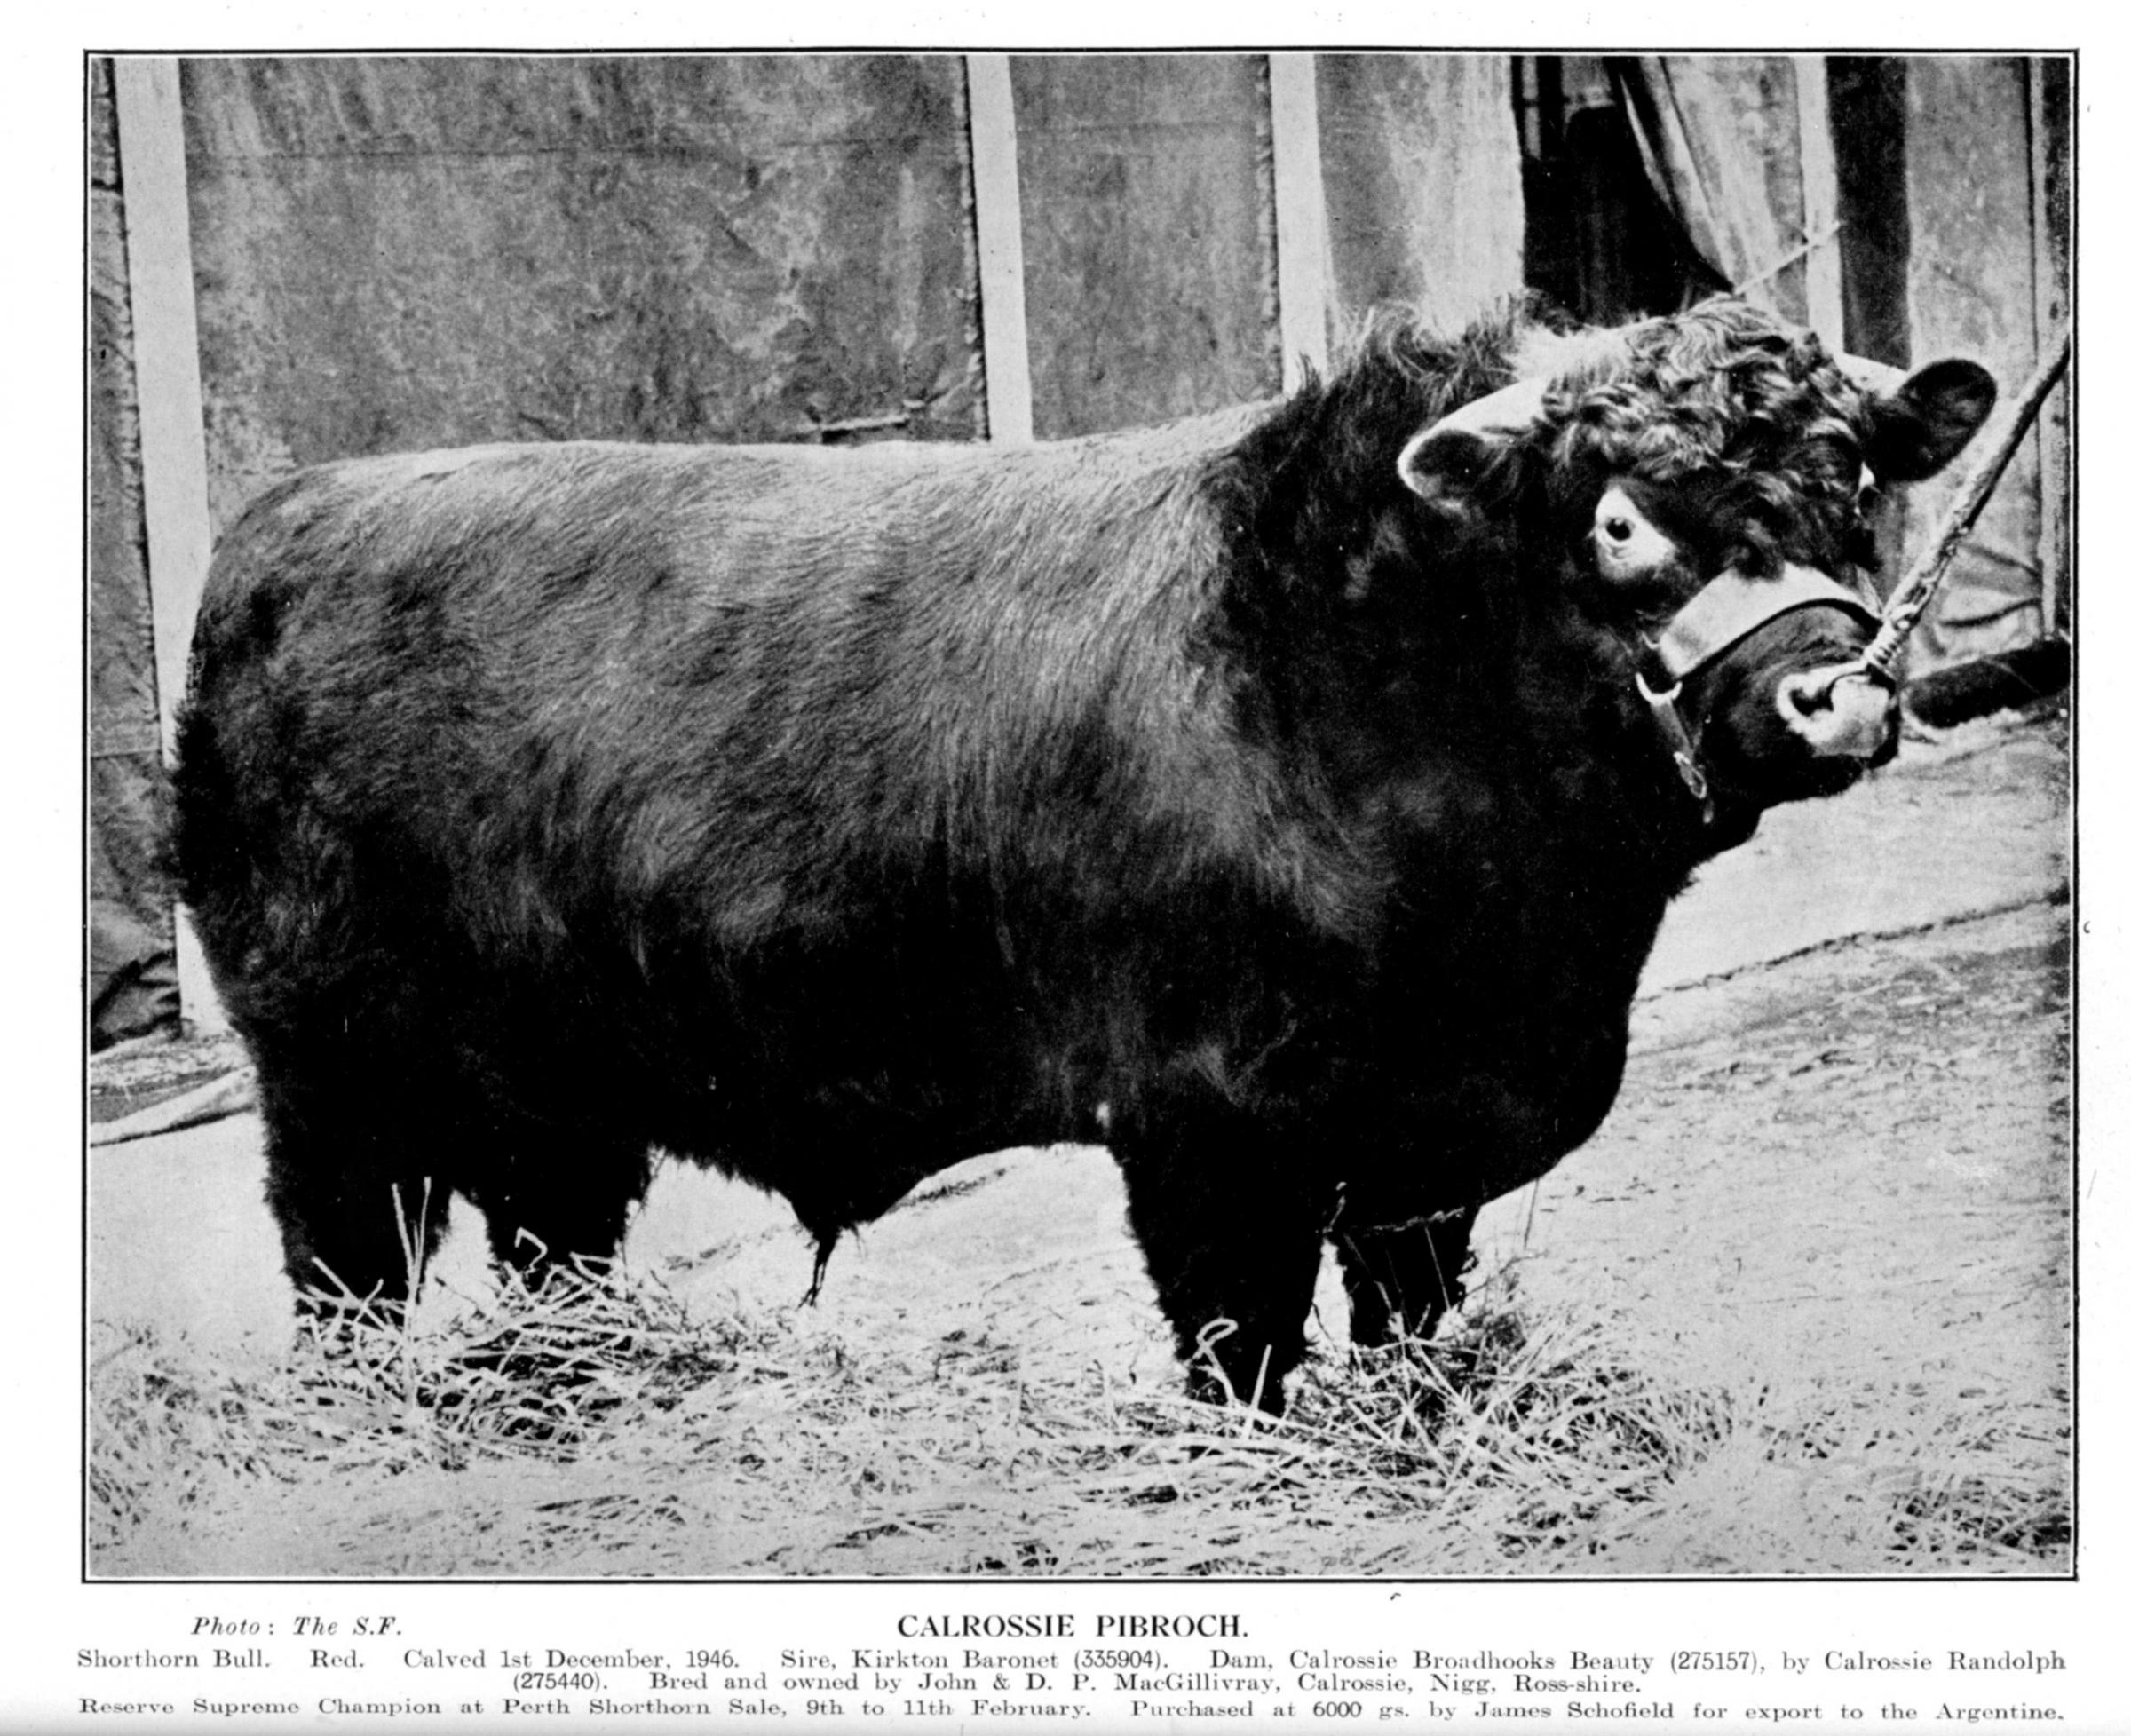 Calrossie Pibroch, bred and owned by John and DP MacGillicray, Calrossie, Nigg, took the championship at Perth in 1948 before selling for 6000gns to James Schofield for export to the Argentine